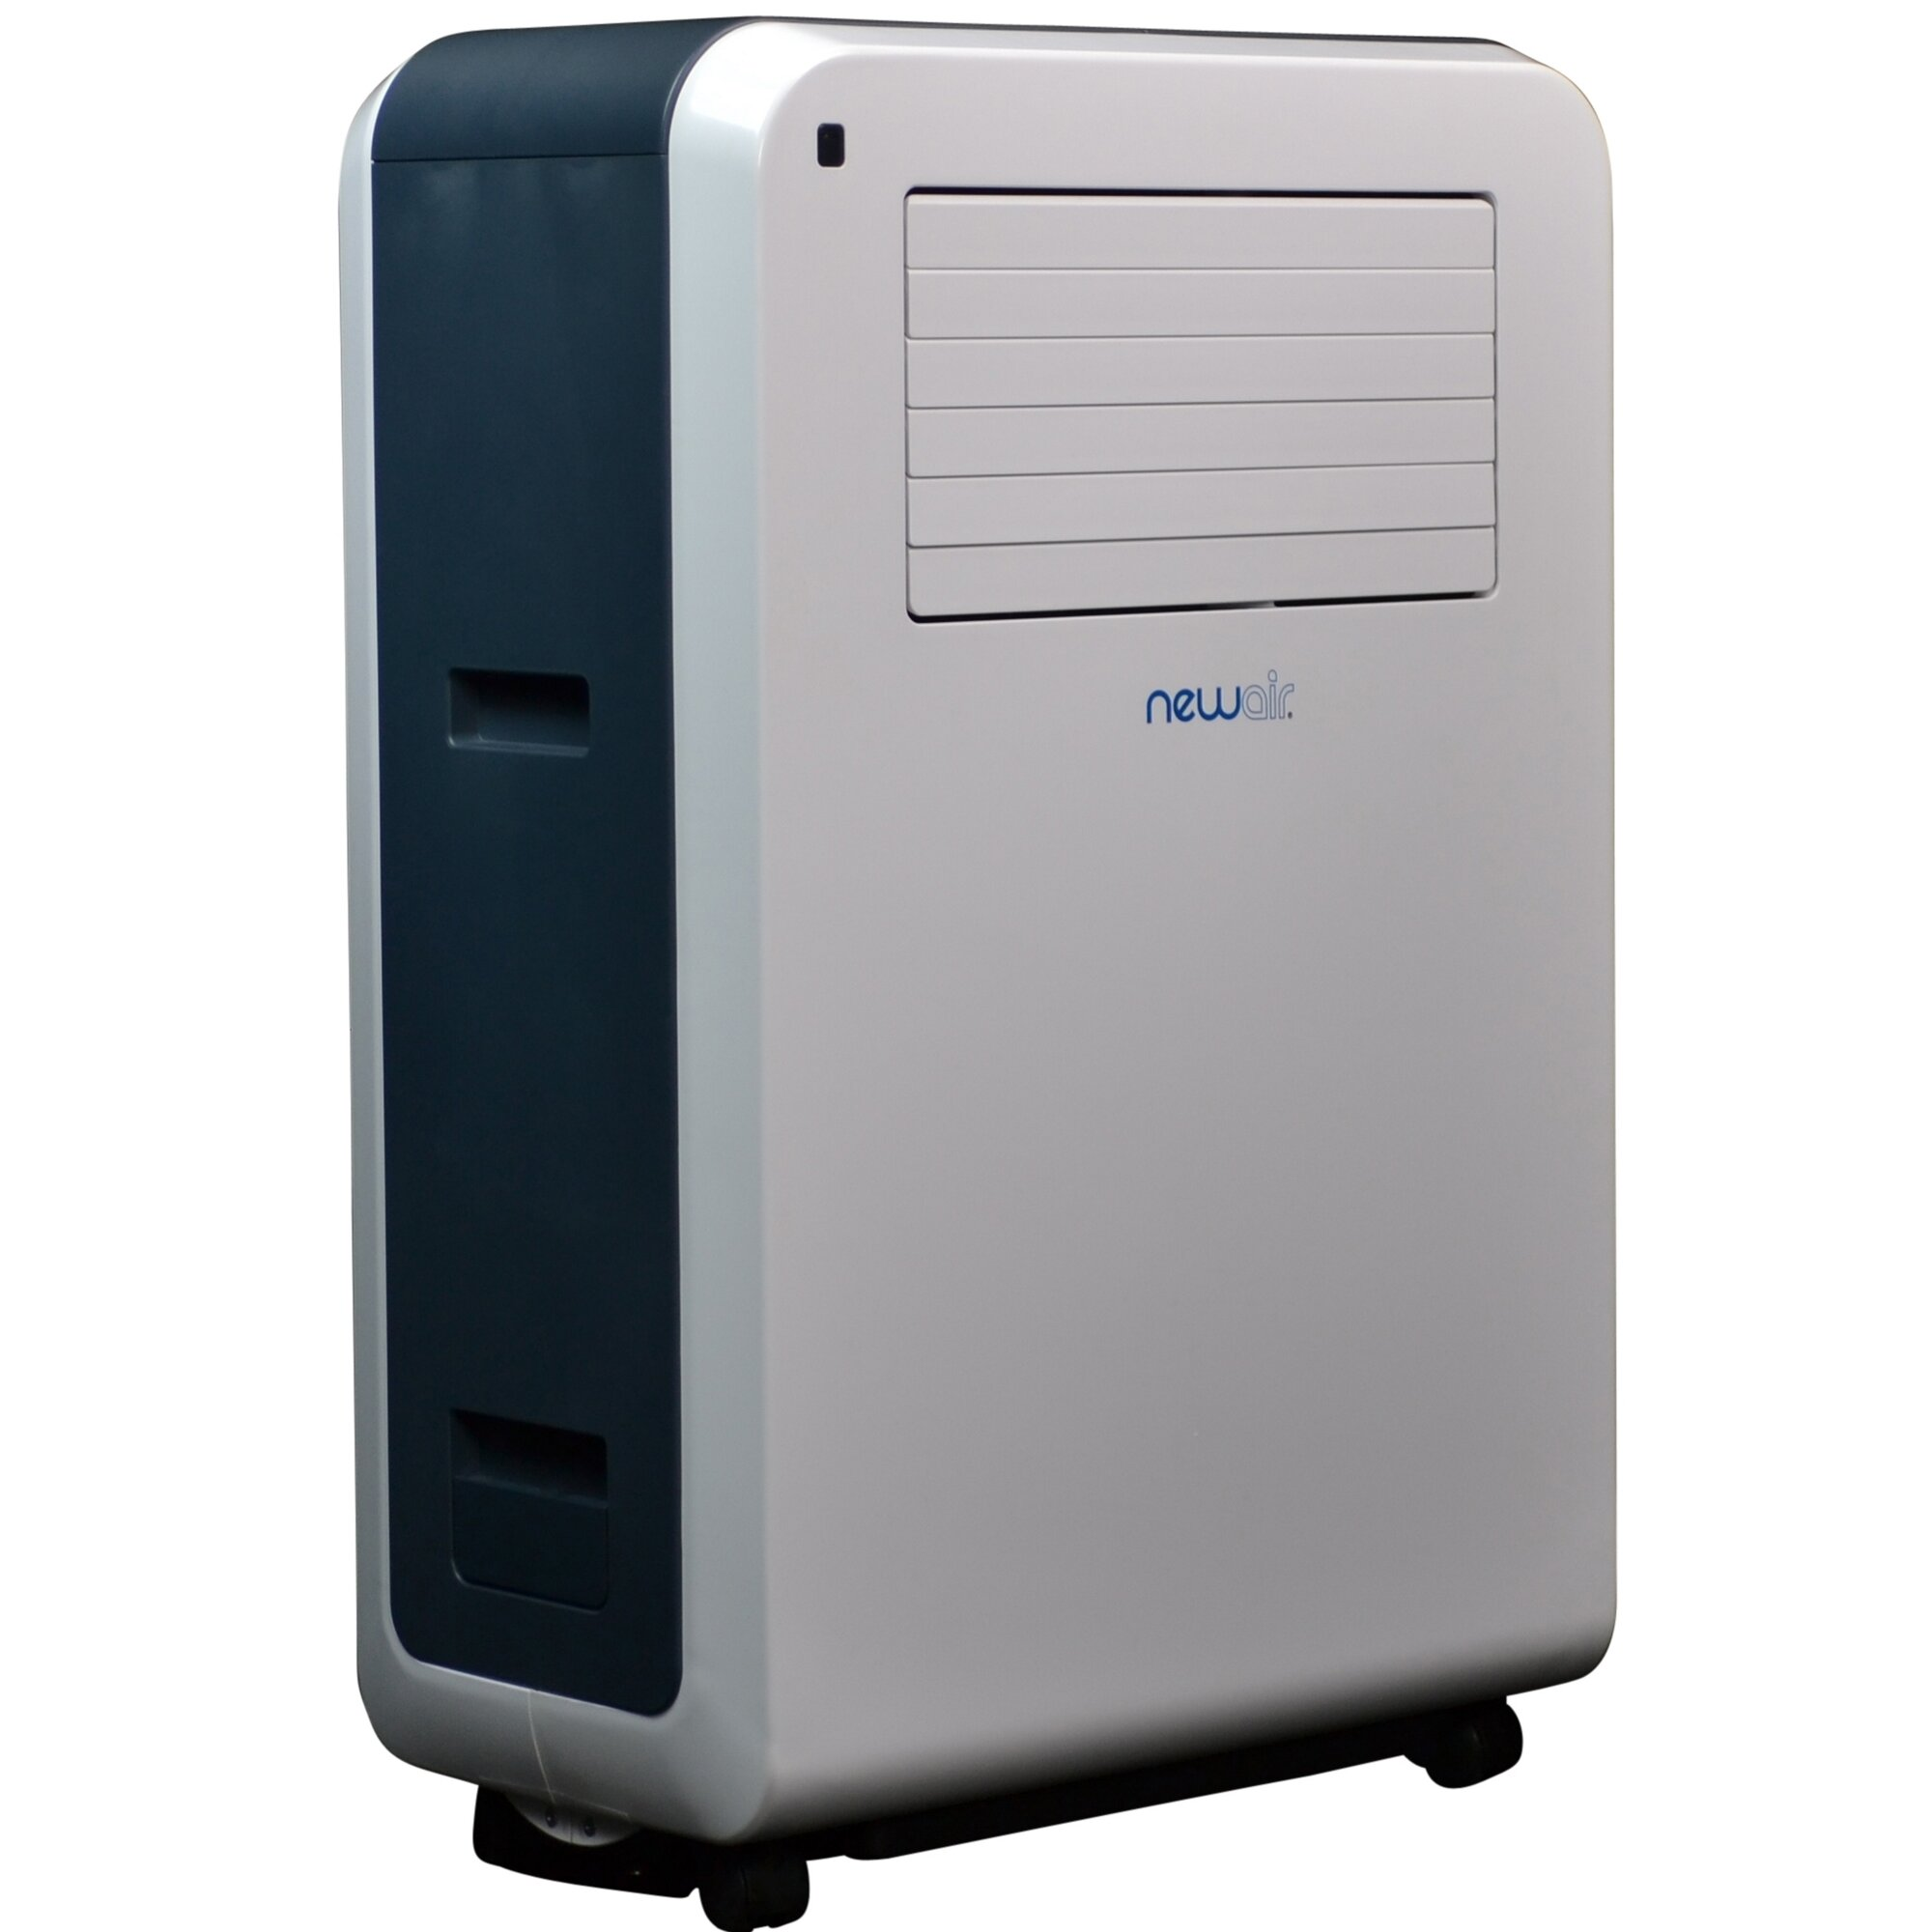 #16212A NewAir 12 000 BTU Portable Air Conditioner With Remote  Brand New 9921 2000 Btu Portable Air Conditioner images with 2000x2000 px on helpvideos.info - Air Conditioners, Air Coolers and more